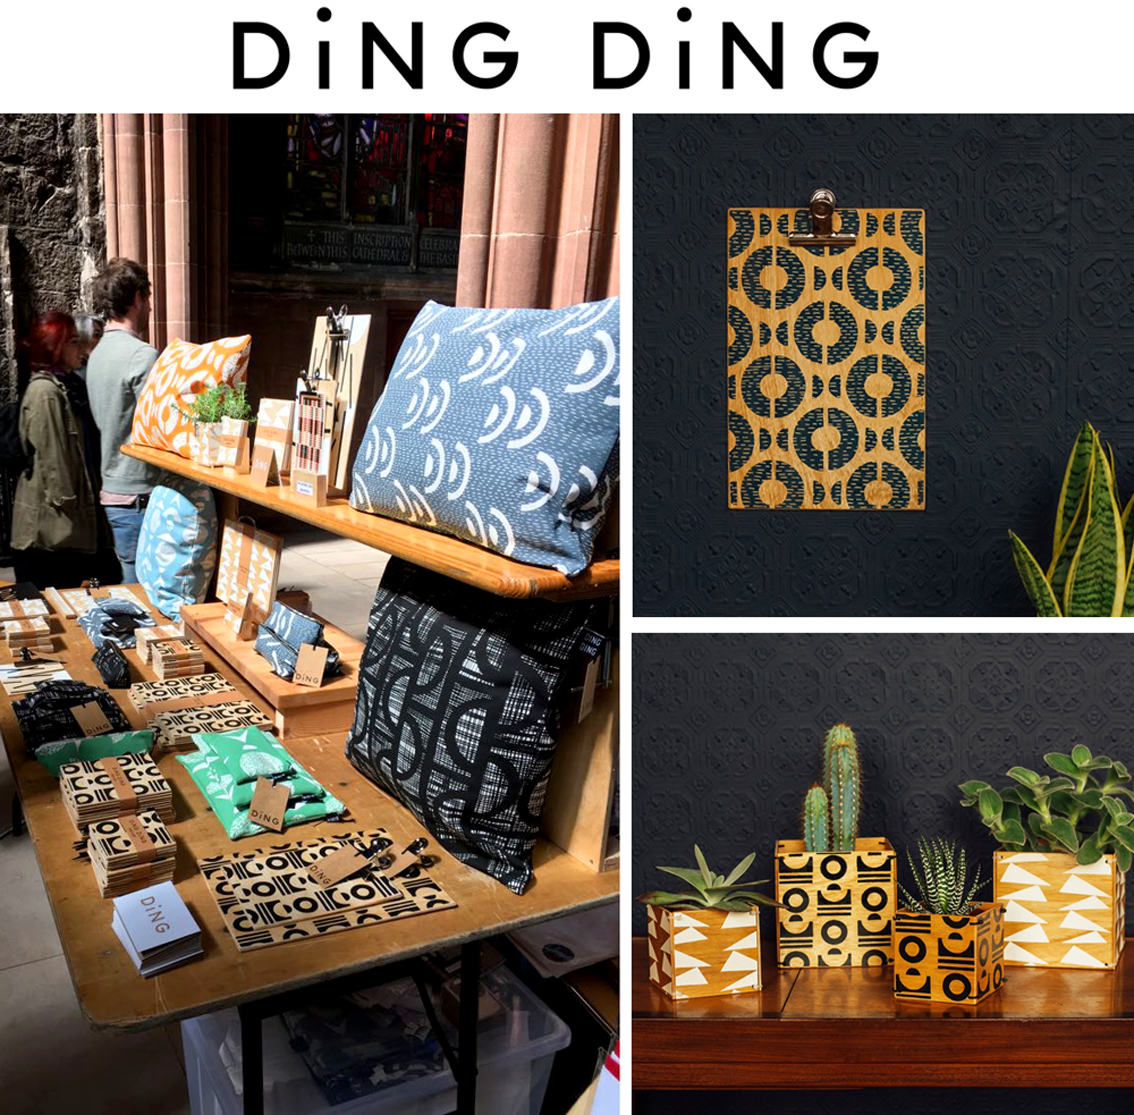 I've been a big fan of  Ding Ding  for a while now, so it was lovely to have a quick chat at the fair. Each item is made by hand in Nottingham, starting with hand-cut collages which are then simplified into one colour prints and applied to homewares, accessories and stationery. I LOVE the clip boards (of which I have two of my own!)